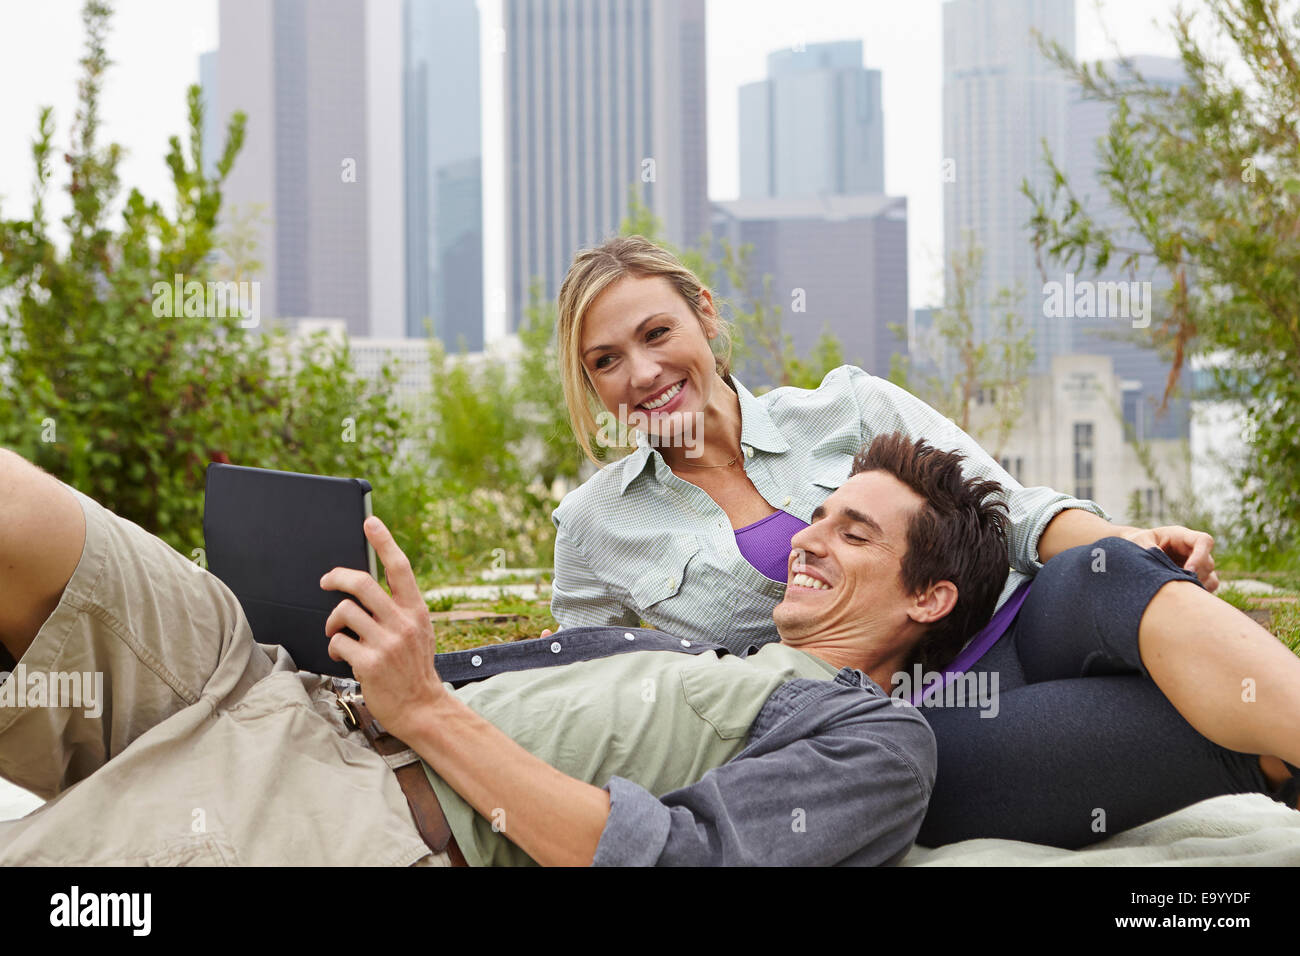 Couple relaxing in park by city Stock Photo